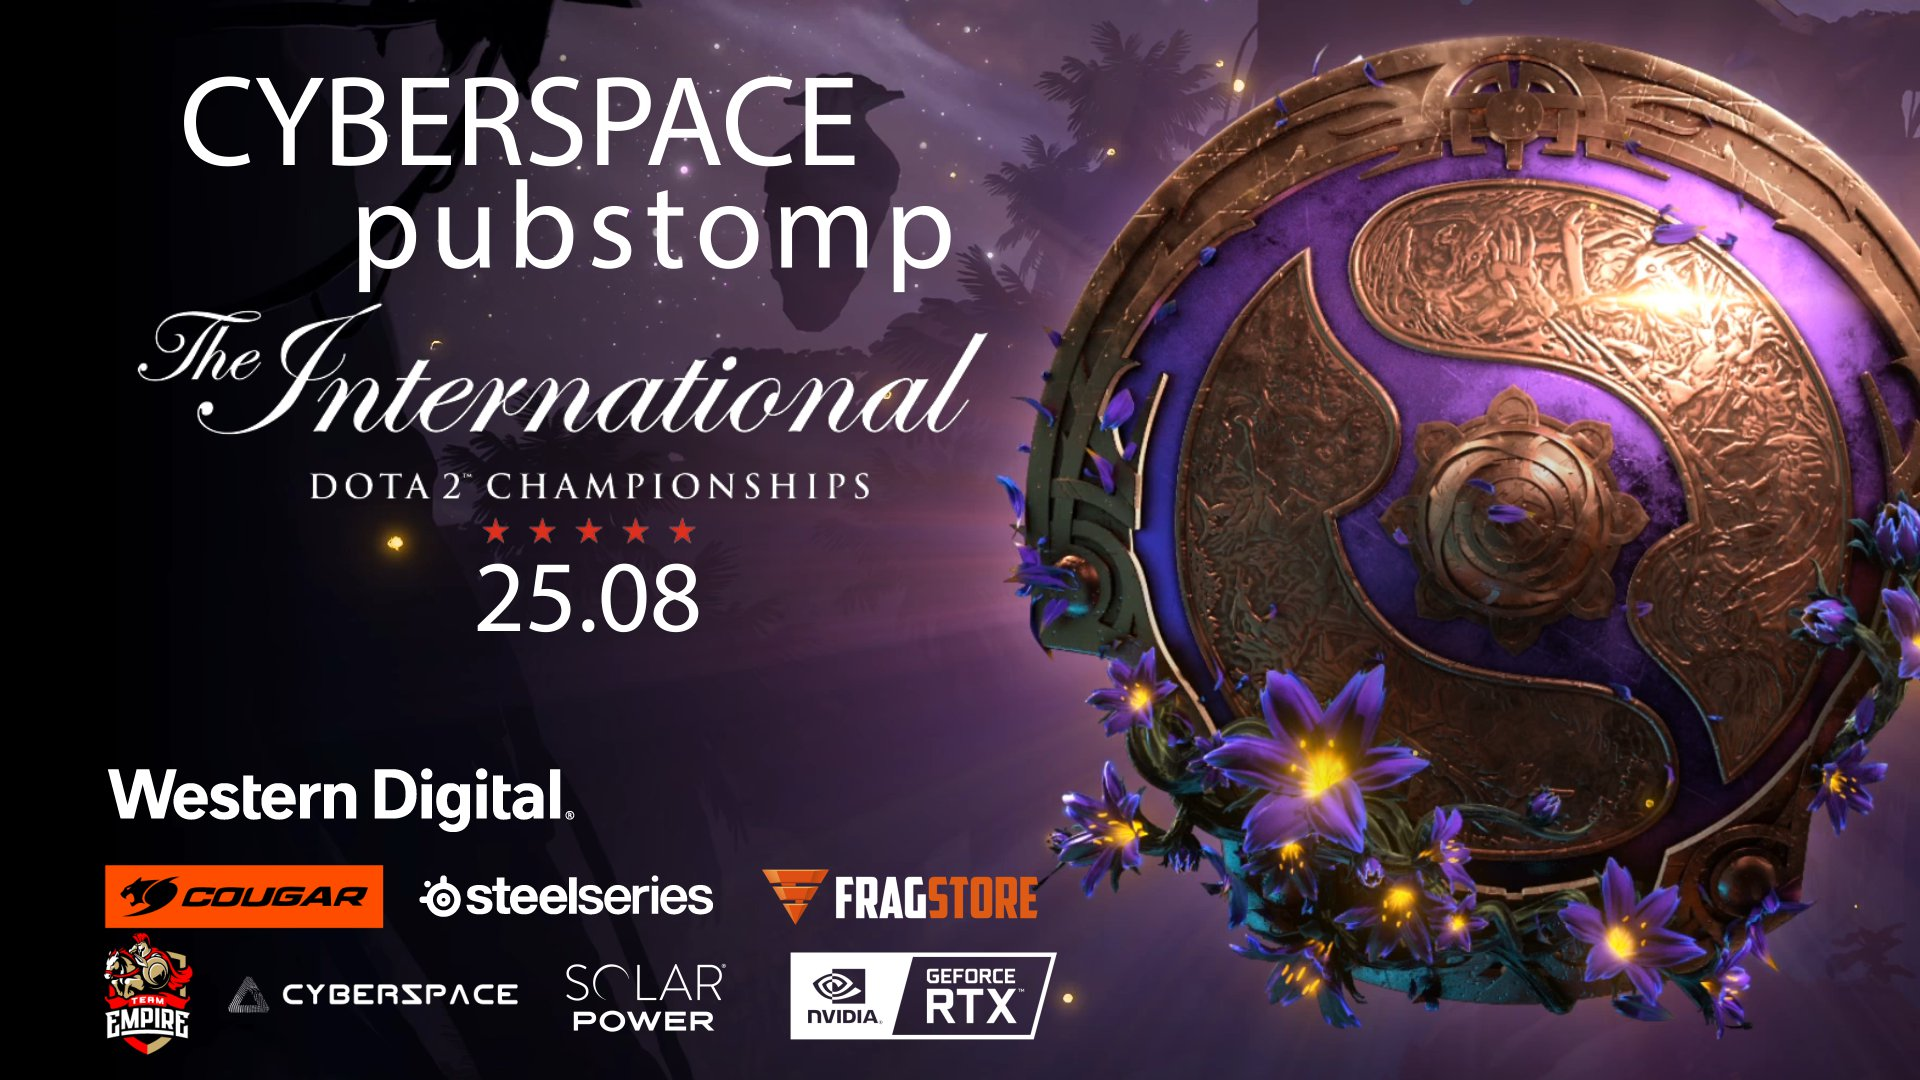 ПАБСТОМП ПО THE INTERNATIONAL 2019